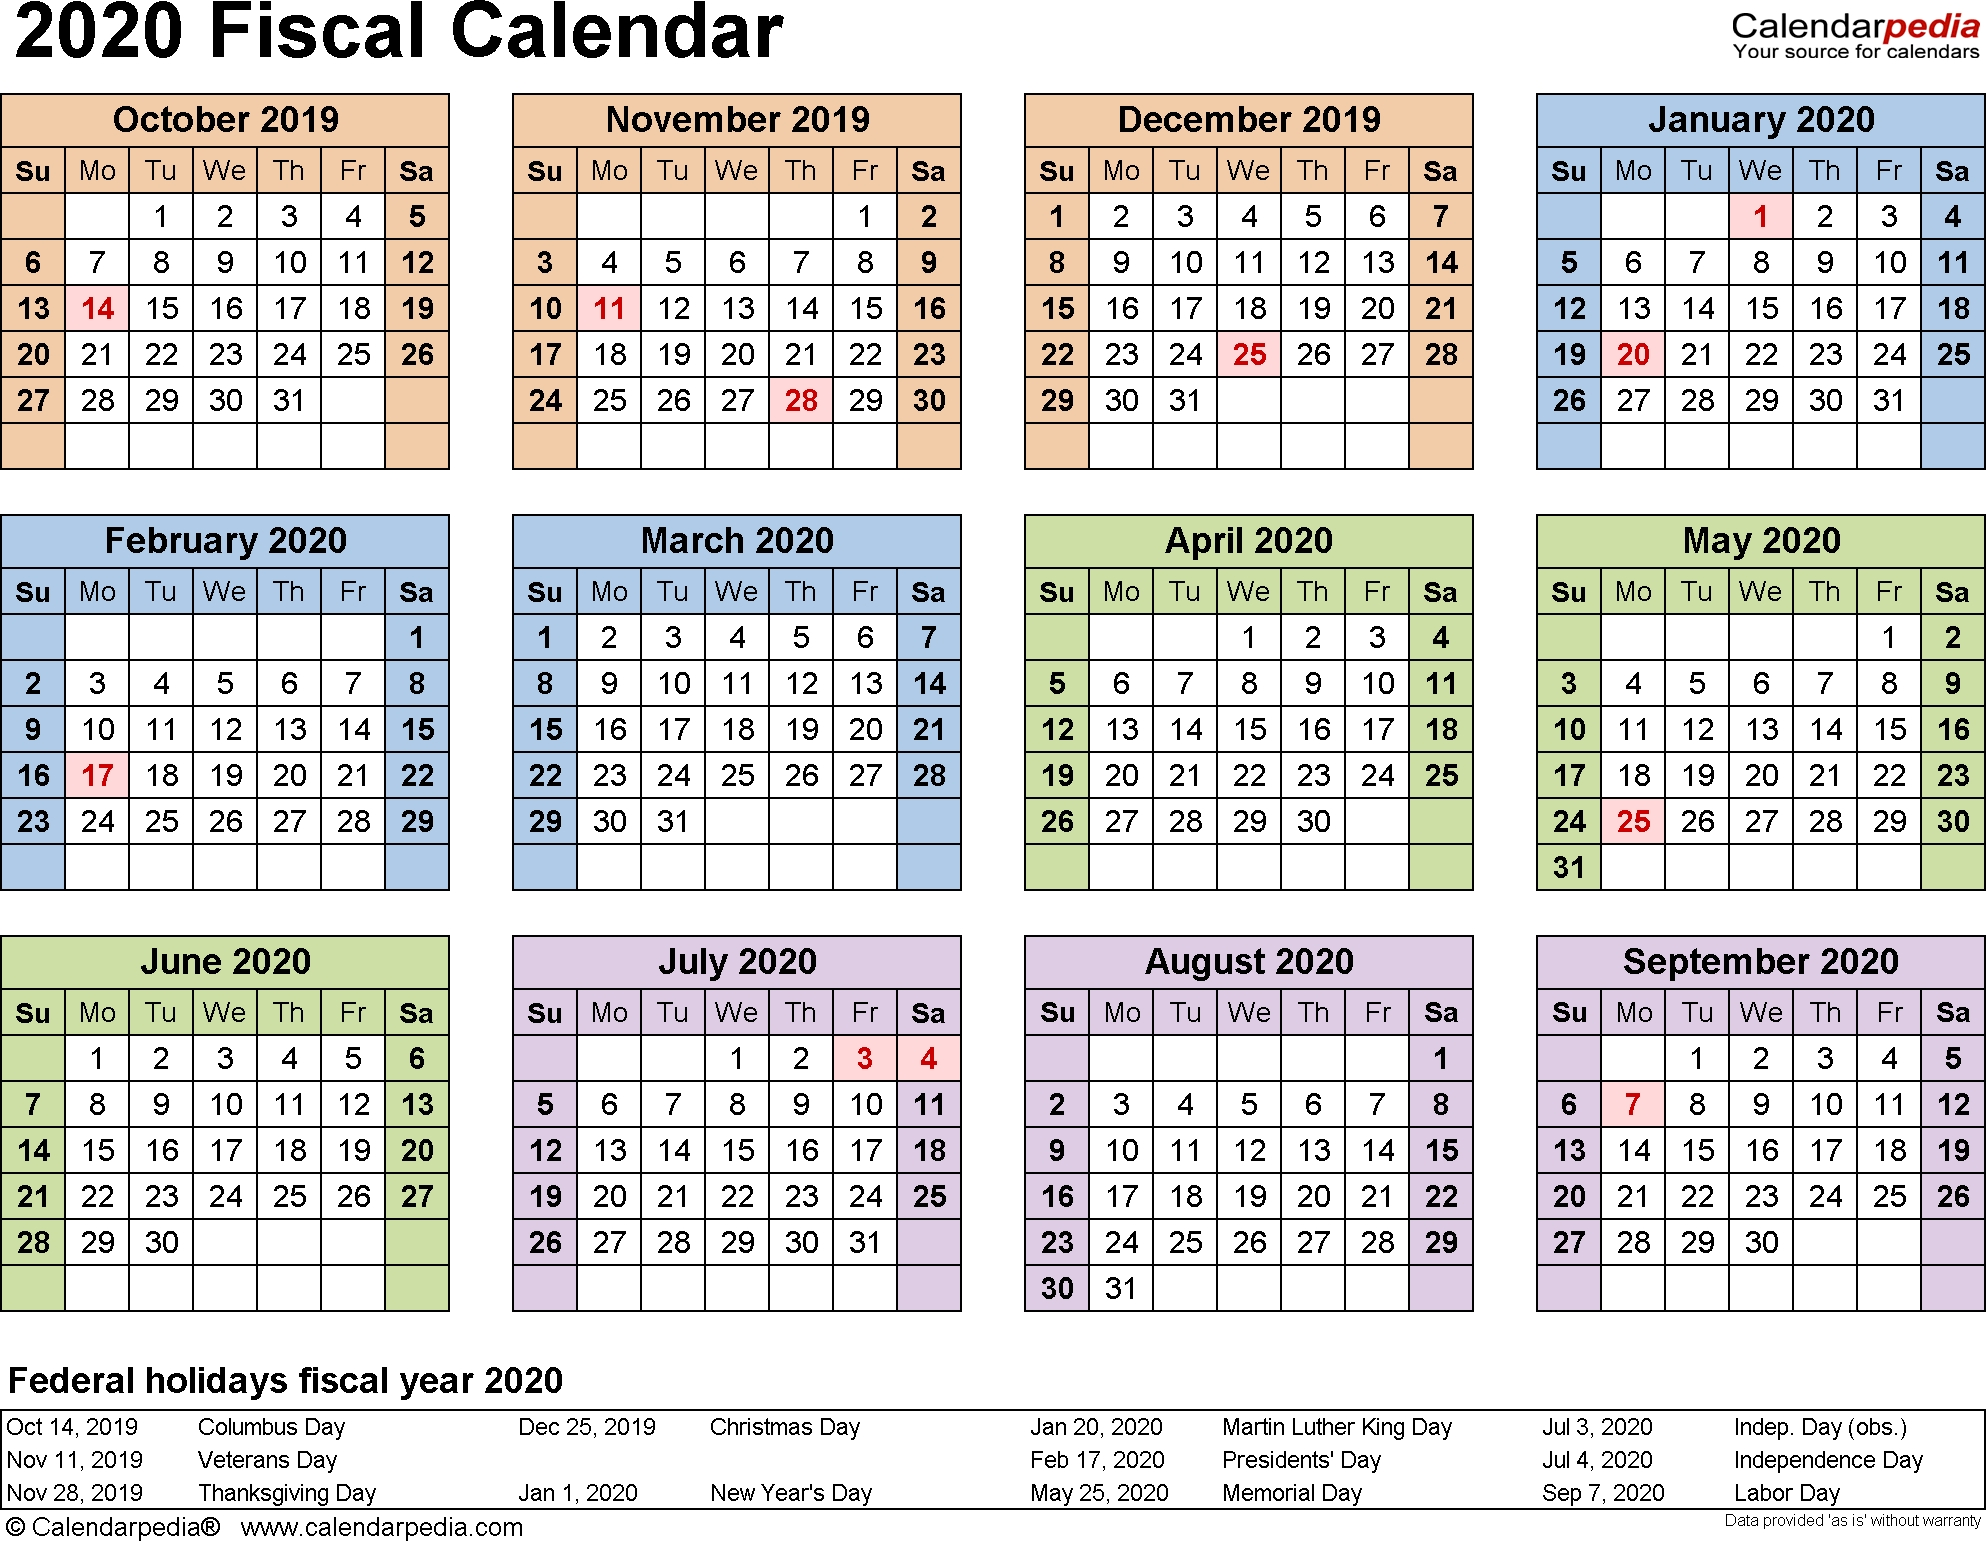 Fiscal Calendars 2020 As Free Printable Word Templates within Tax Calender 2019/2020